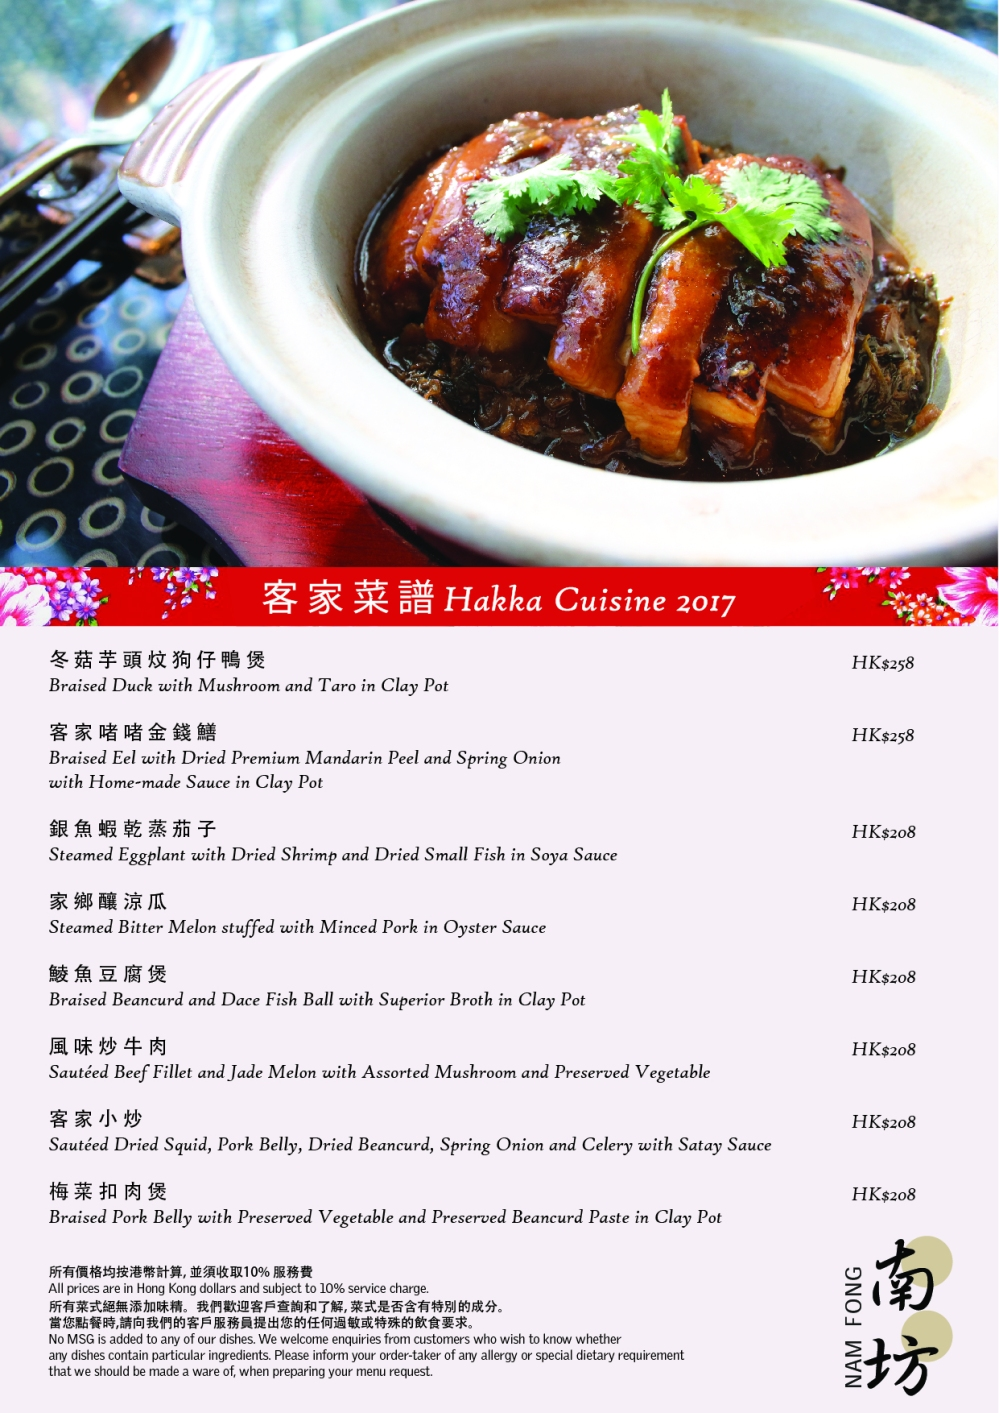 Nam Fong Le Meridien Cyberport 南坊中餐廳 數碼港艾美酒店 Hakka Menu - OKiBook Hong Kong Restaurant Booking